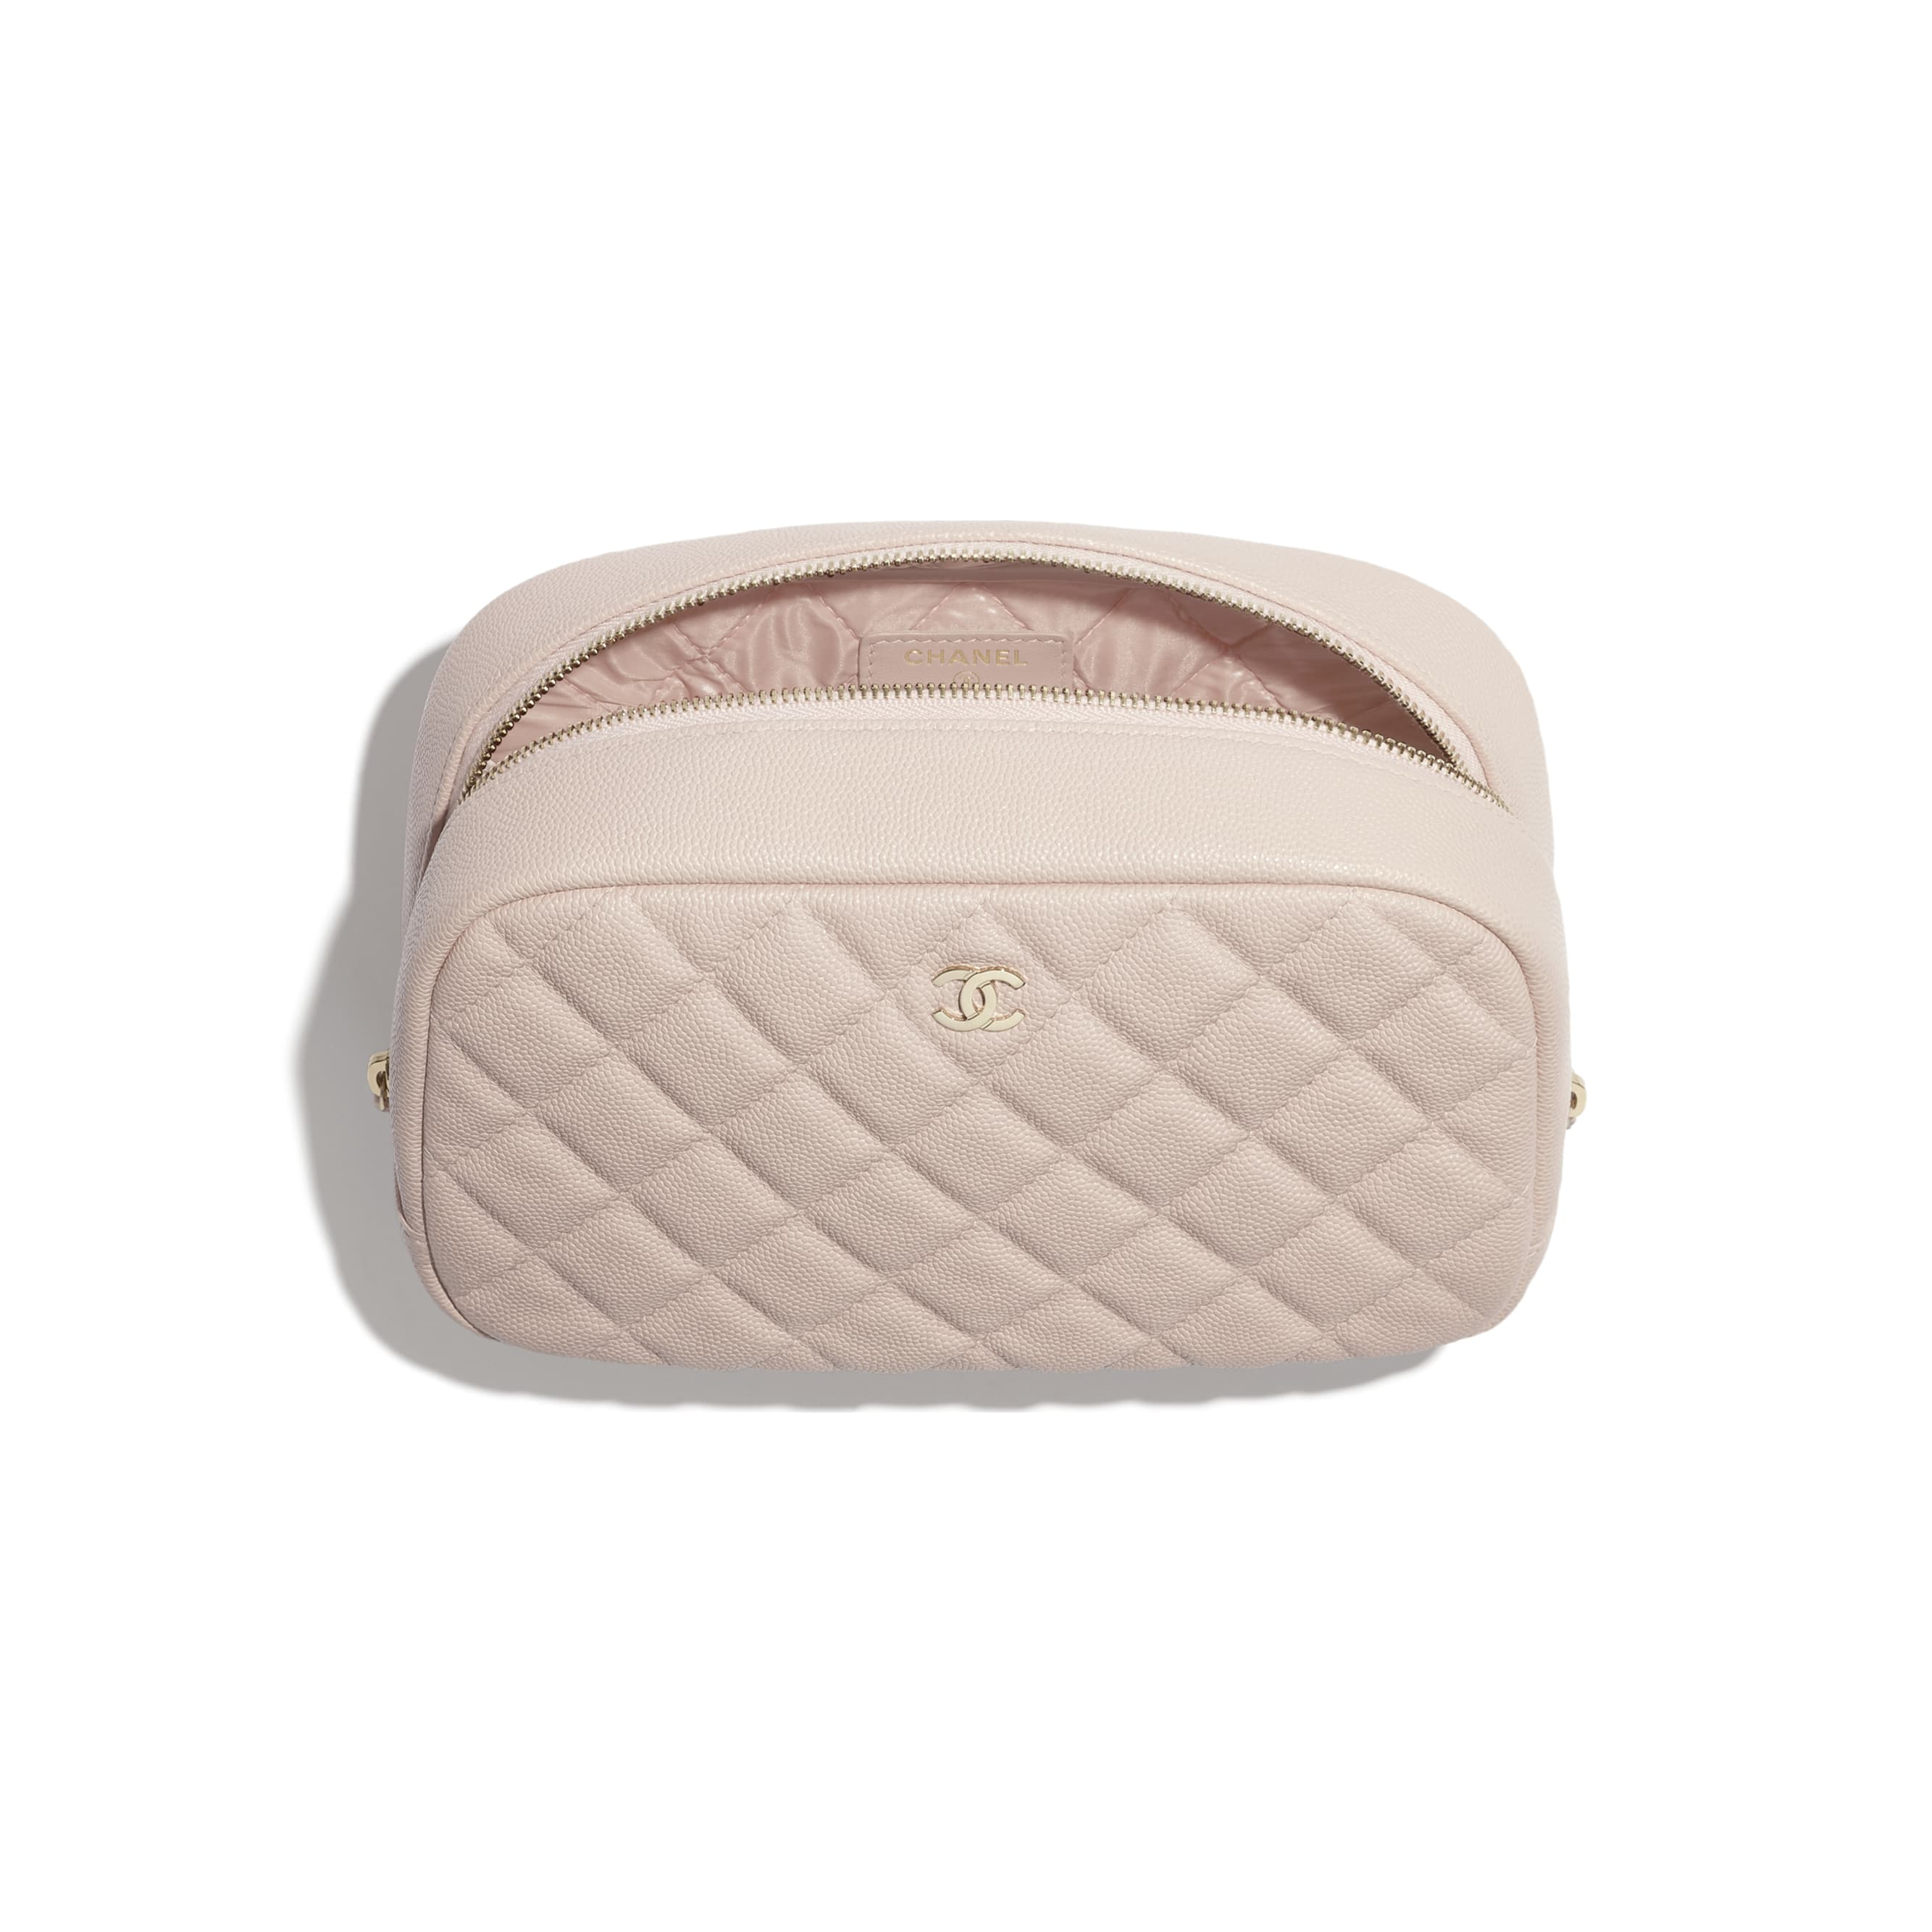 Classic Case - Pale Pink - Grained Shiny Calfskin & Gold-Tone Metal - CHANEL - Alternative view - see standard sized version